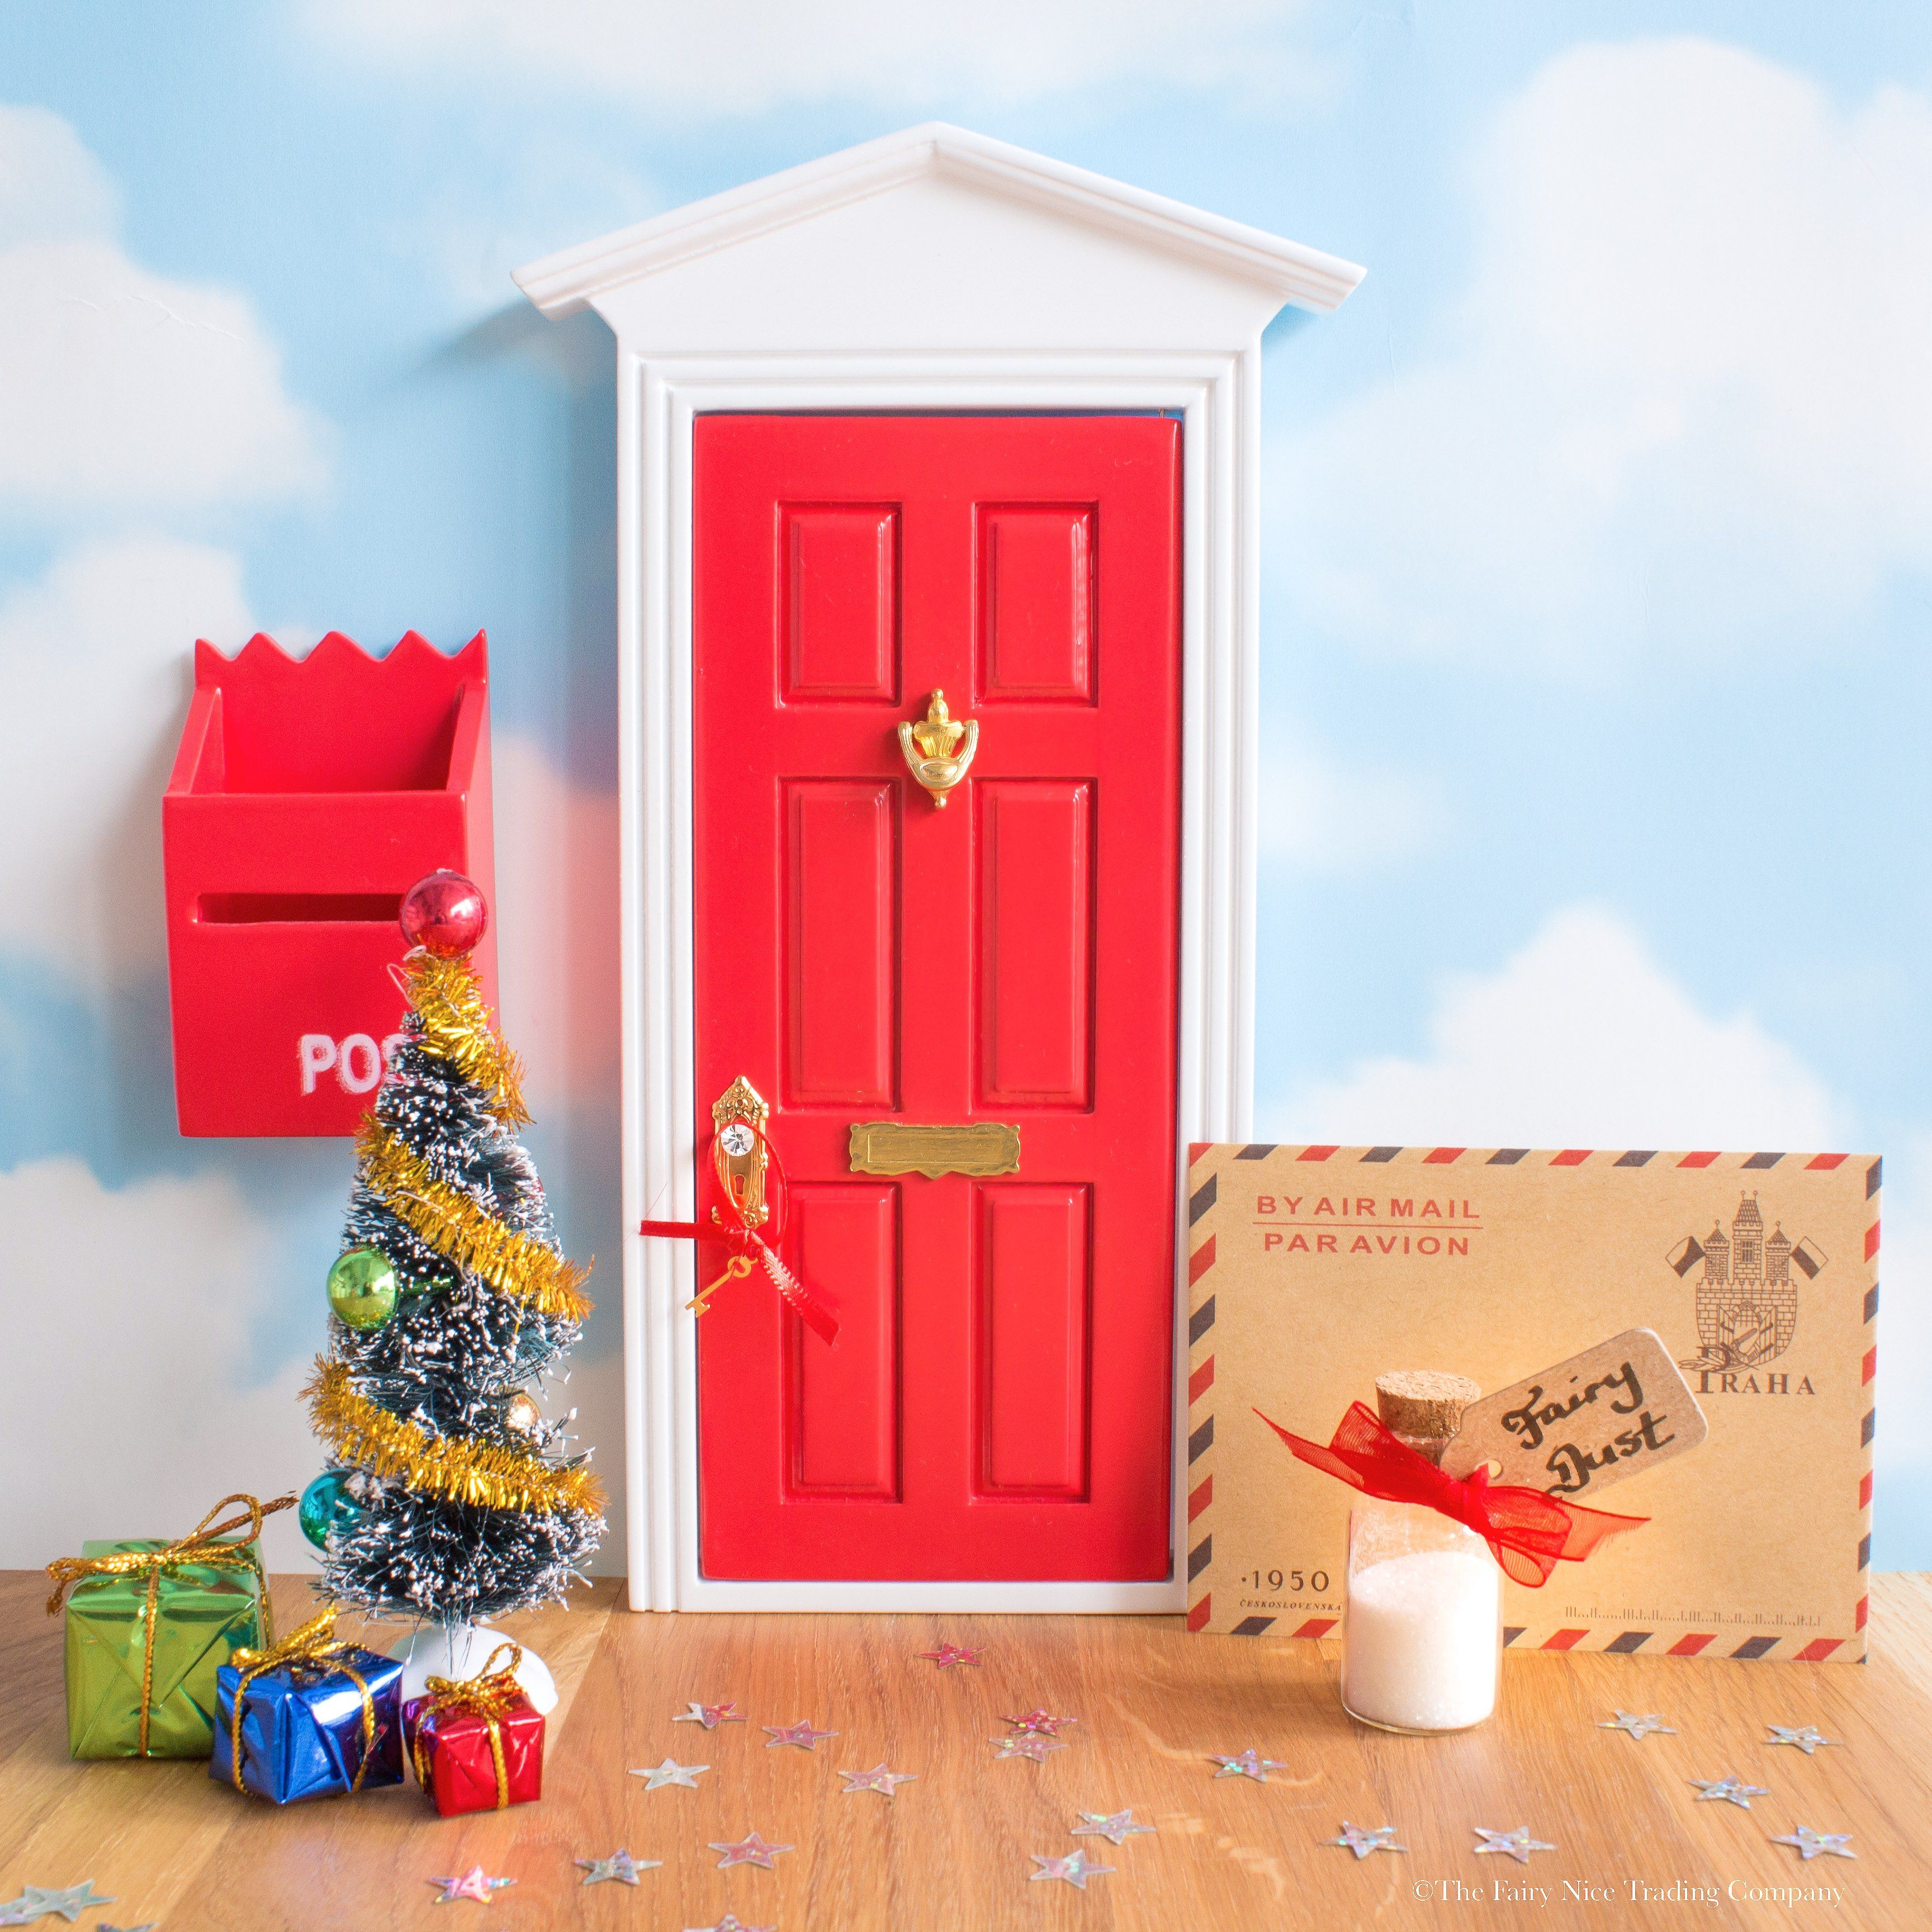 Exquisite Christmas Fairy Door Set Containing Gorgeous Large Red